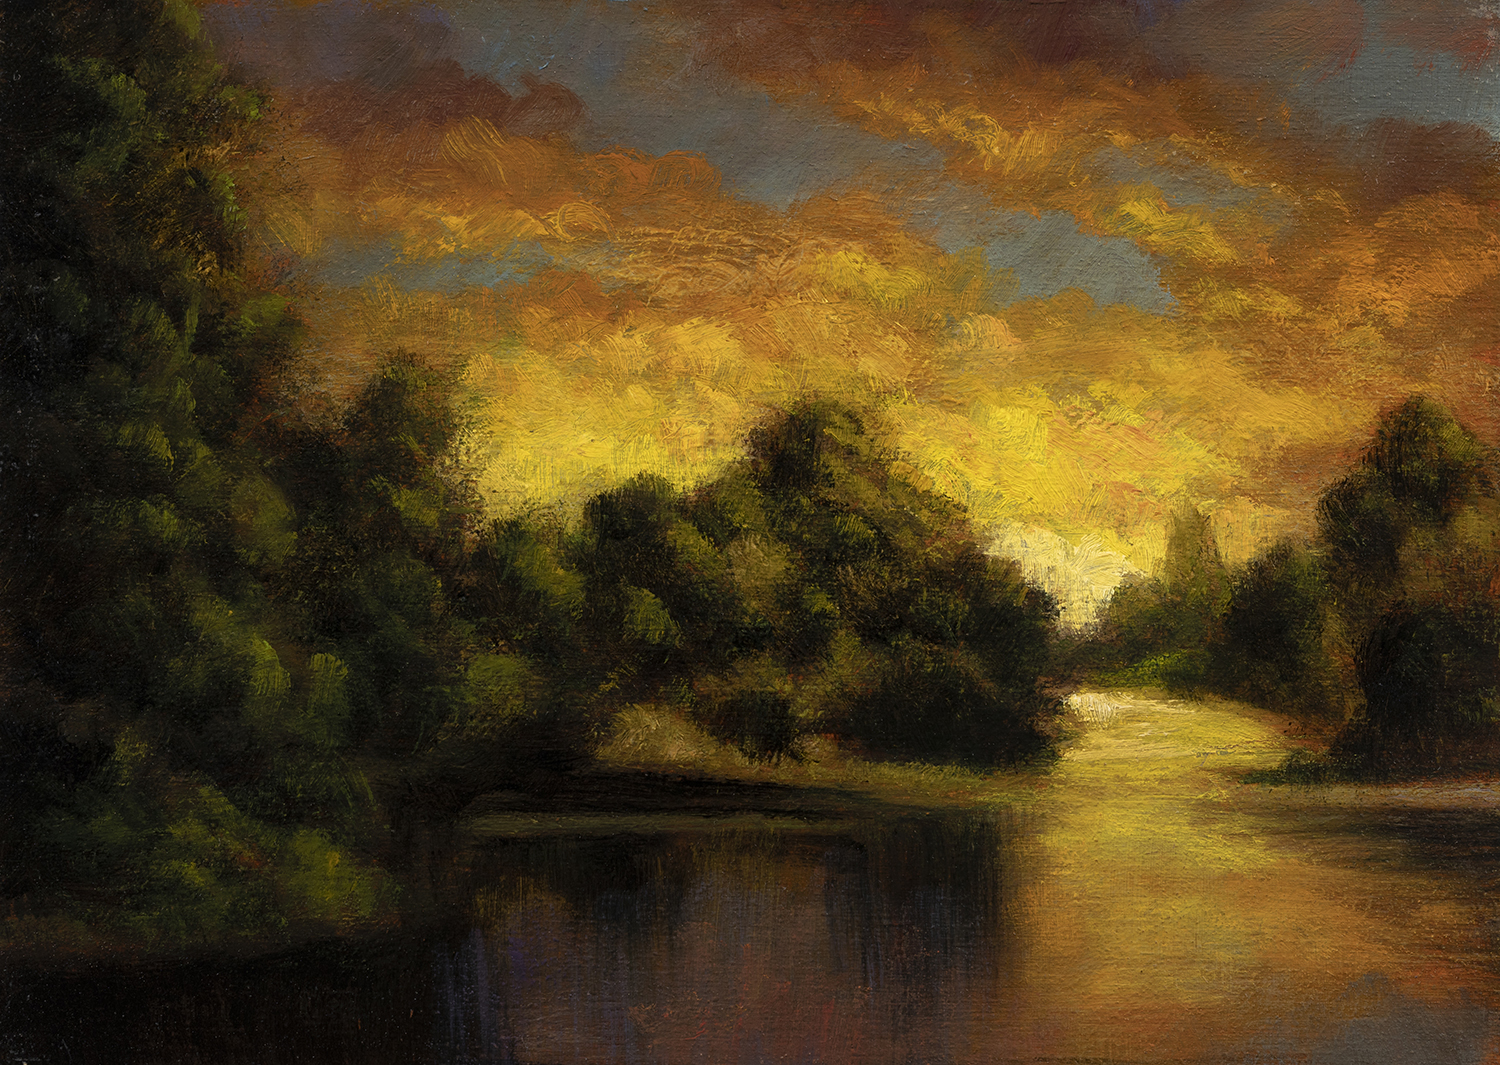 Riverside Reflections by M Francis McCarthy - 5x7 Oil on Wood Panel